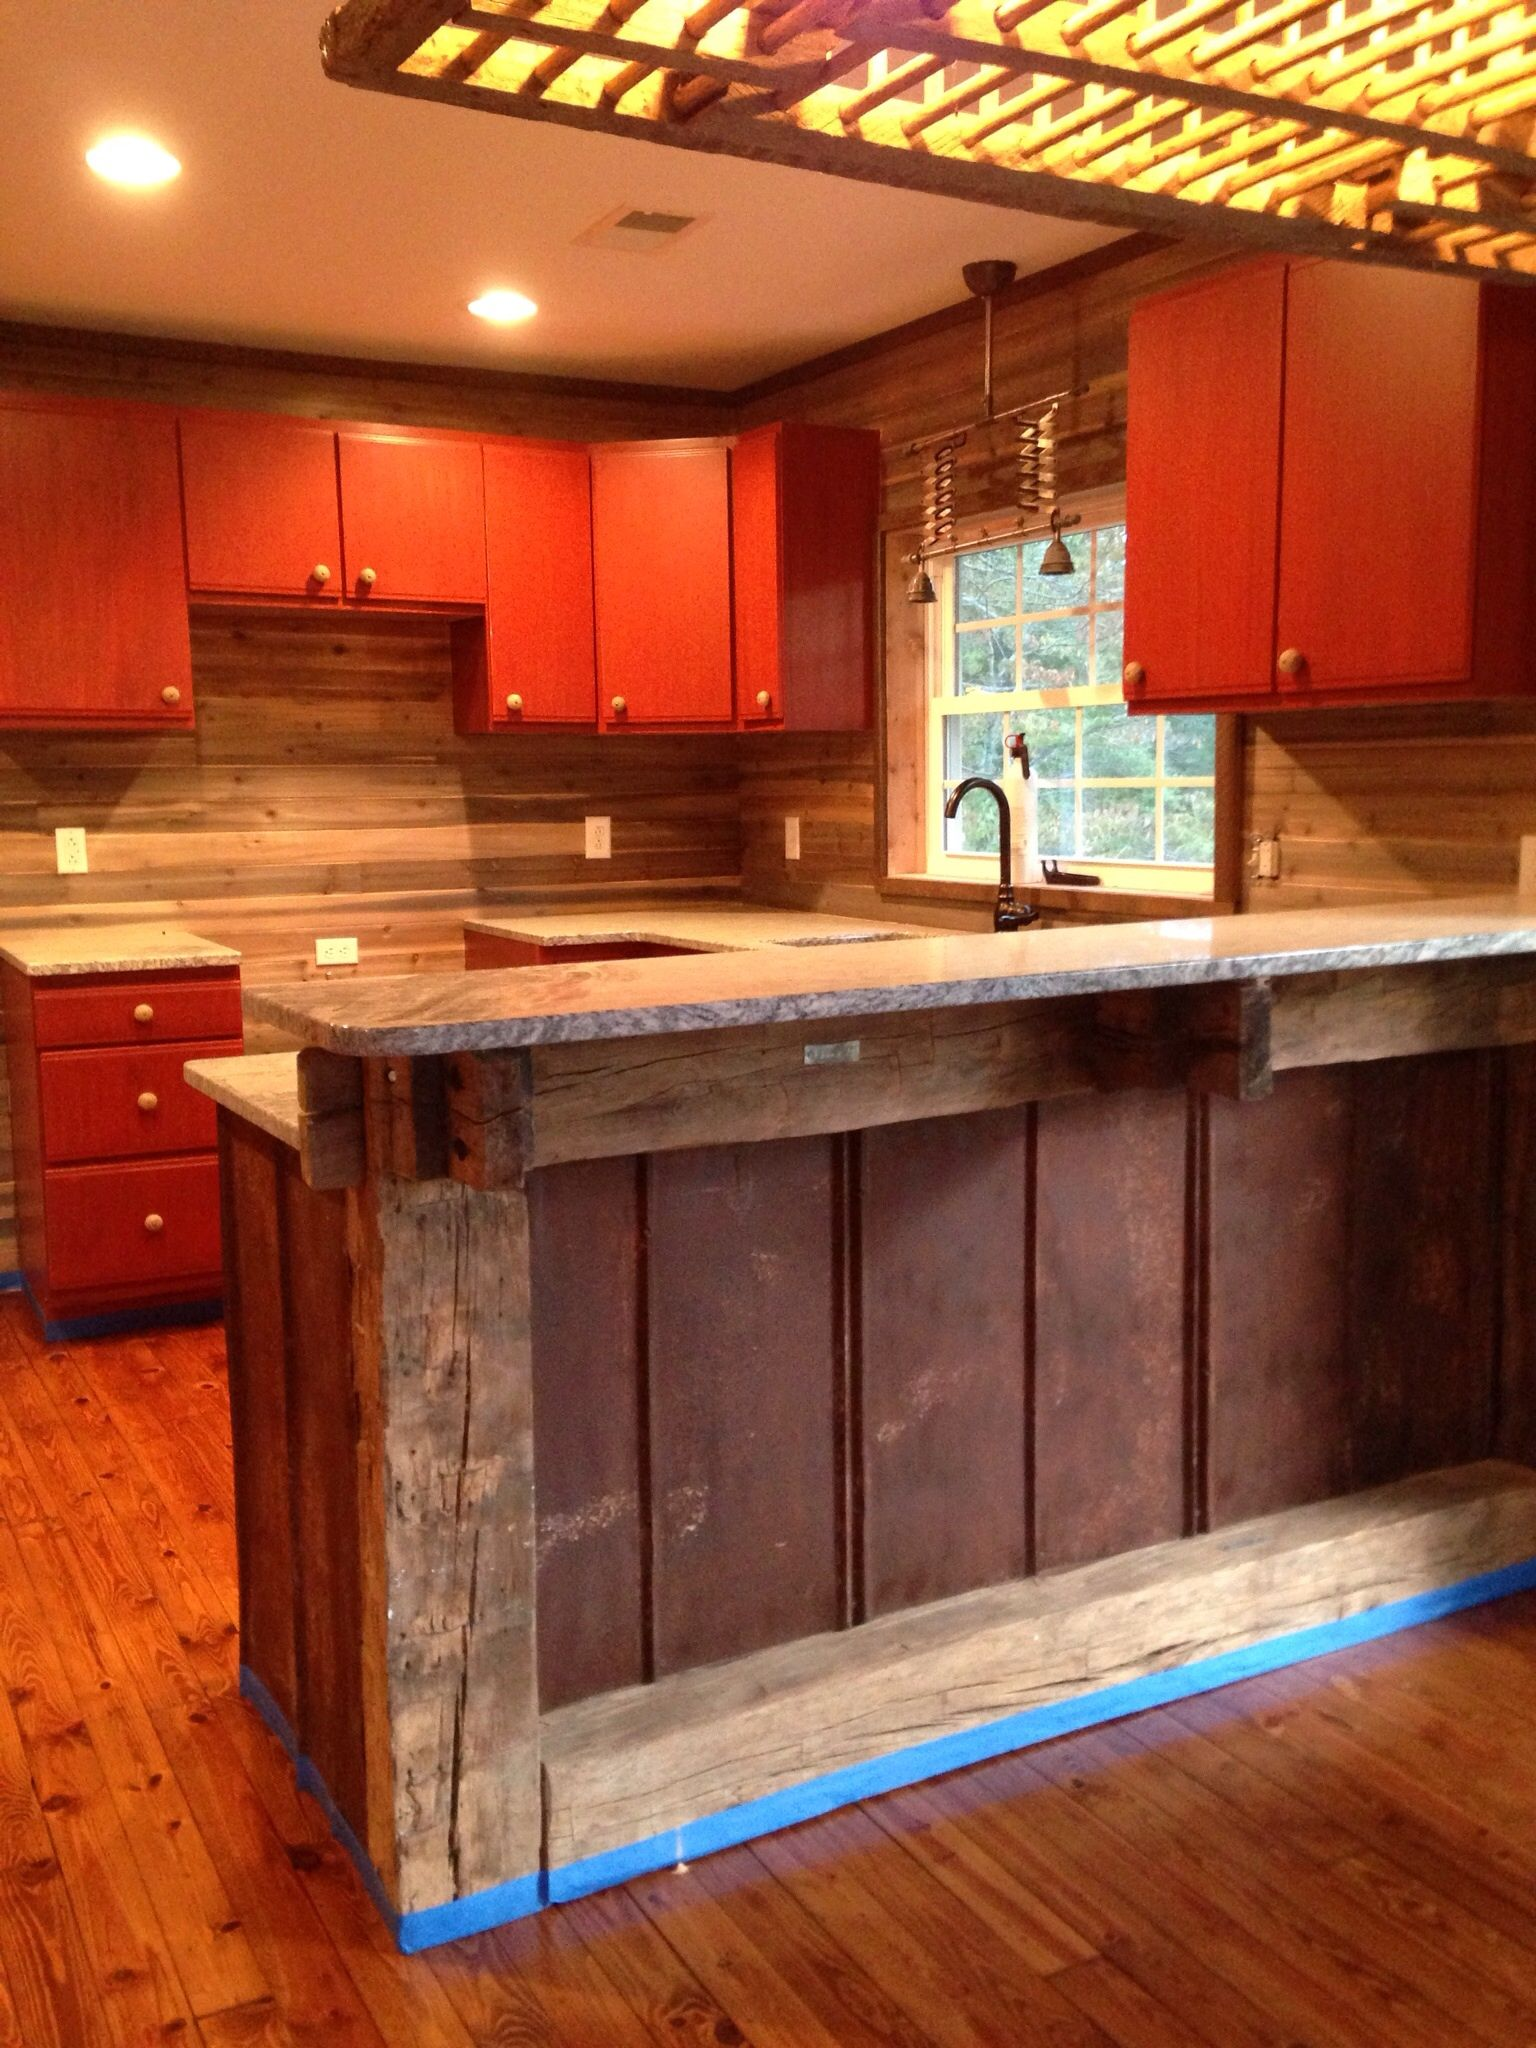 Ordinaire Kitchen Bar Supports Made From Old Numbered Beams And Back Splash Is  Reclaimed Rusted Metal Roofing